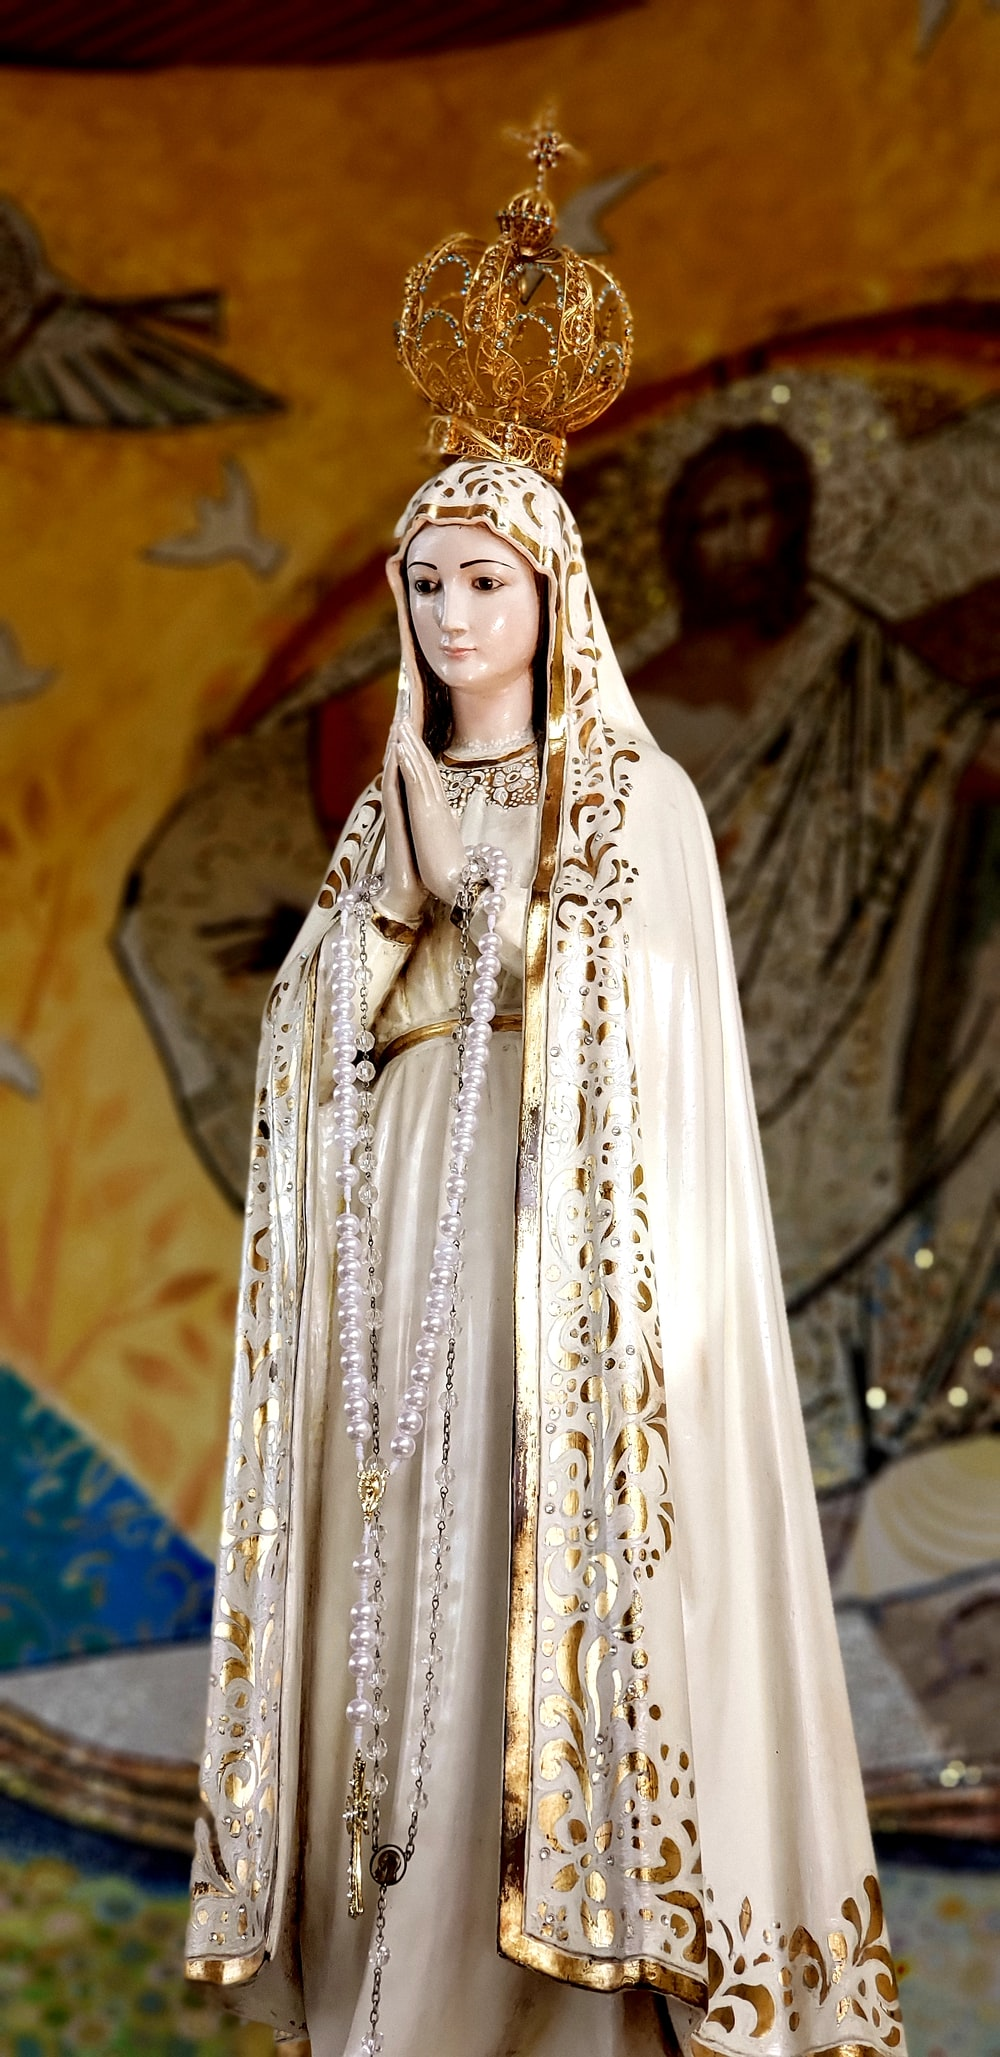 Our Lady Of Fatima Pictures Download Free Images On Unsplash